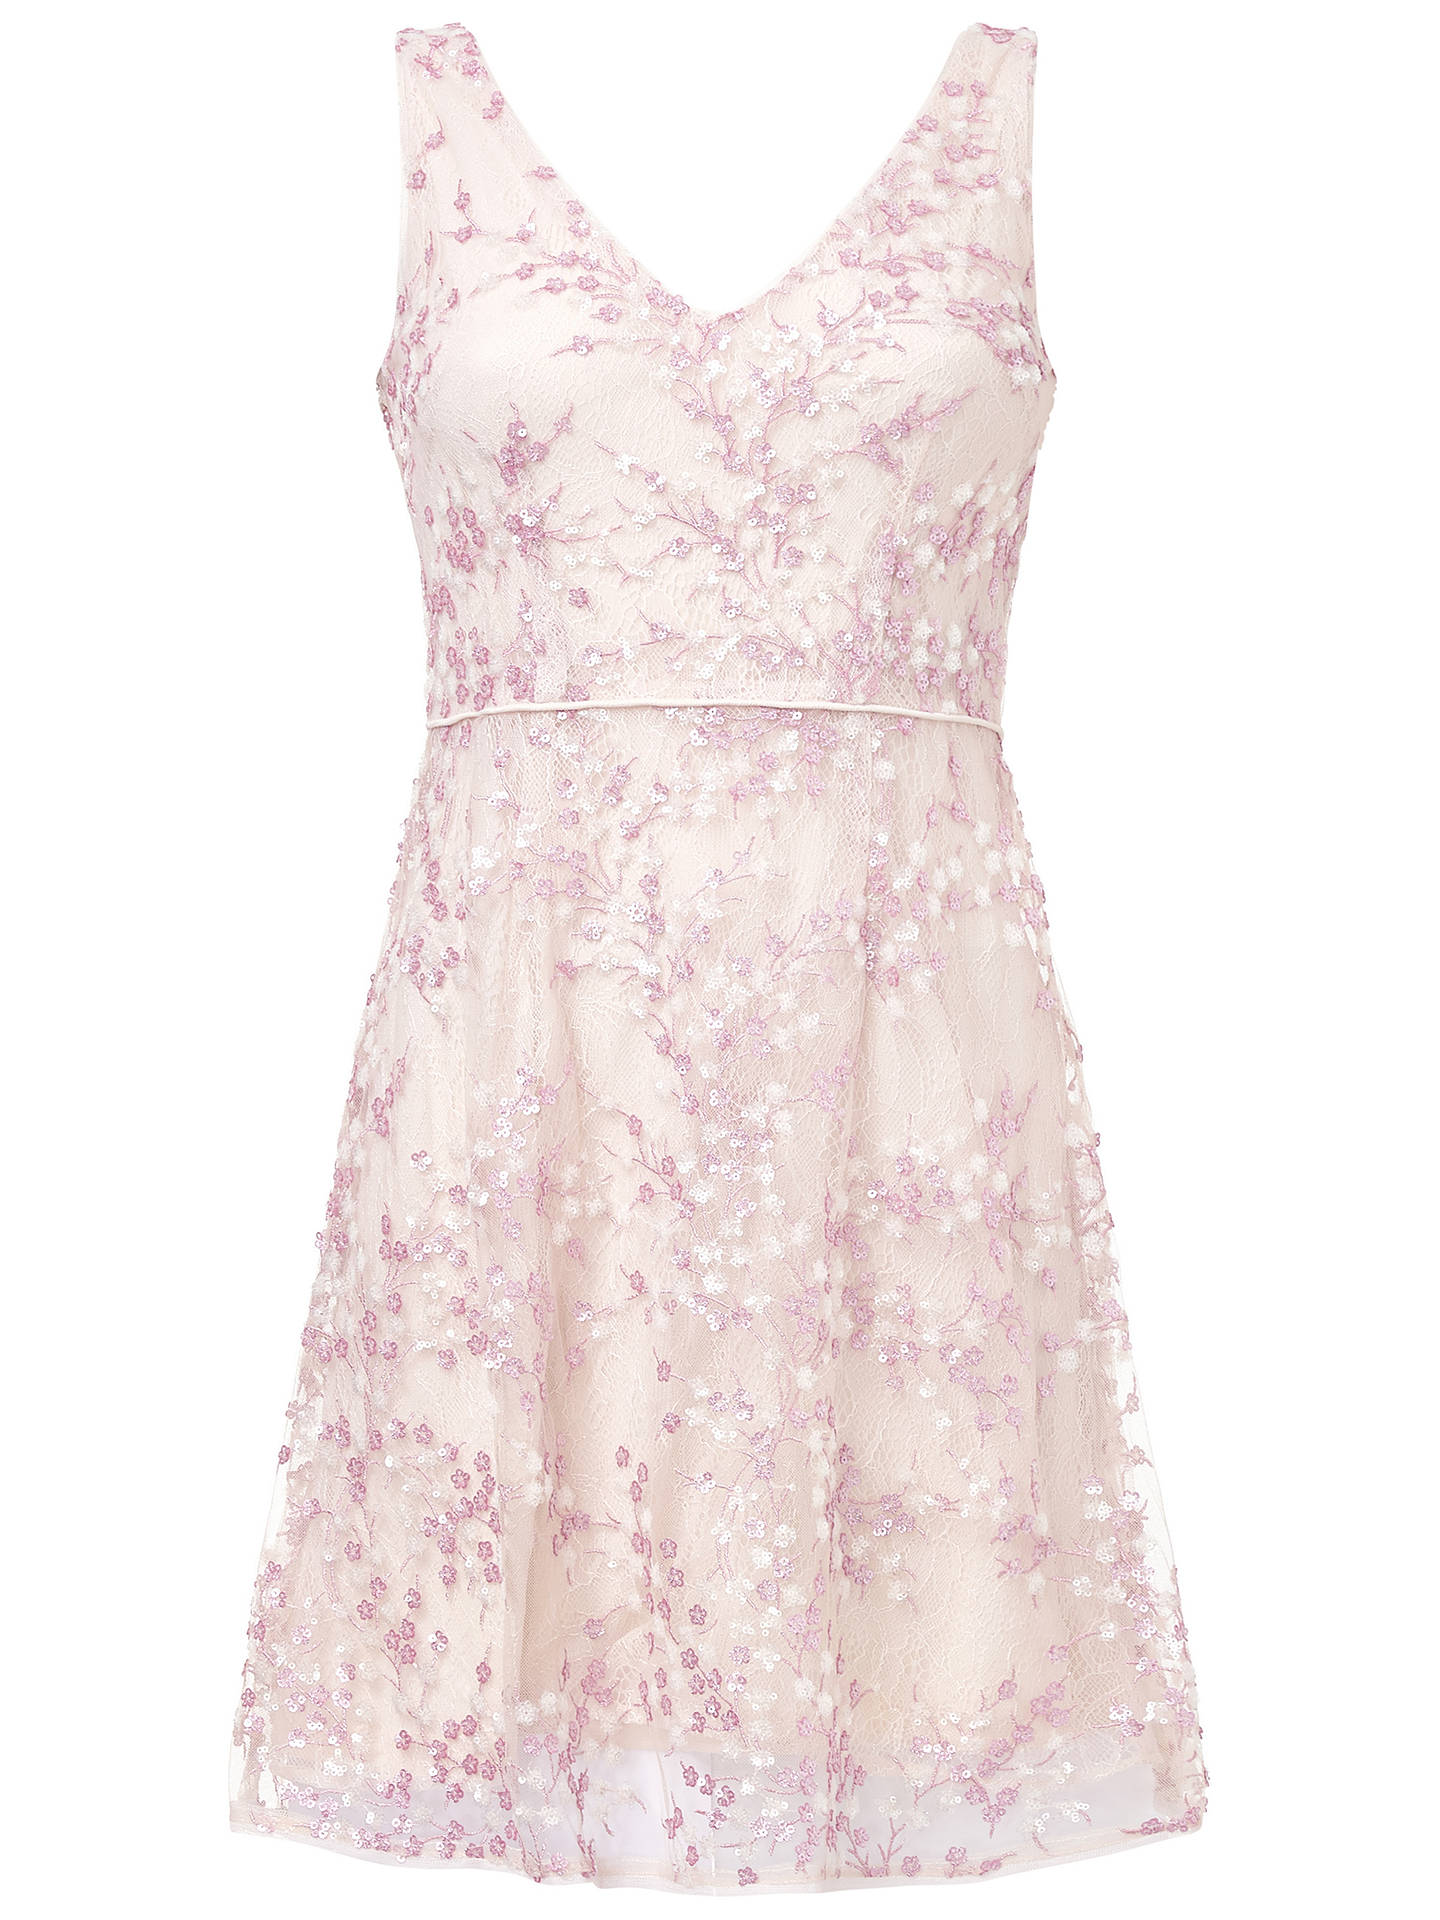 Buy Adrianna Papell A-line Short Dress, Pink, 8 Online at johnlewis.com